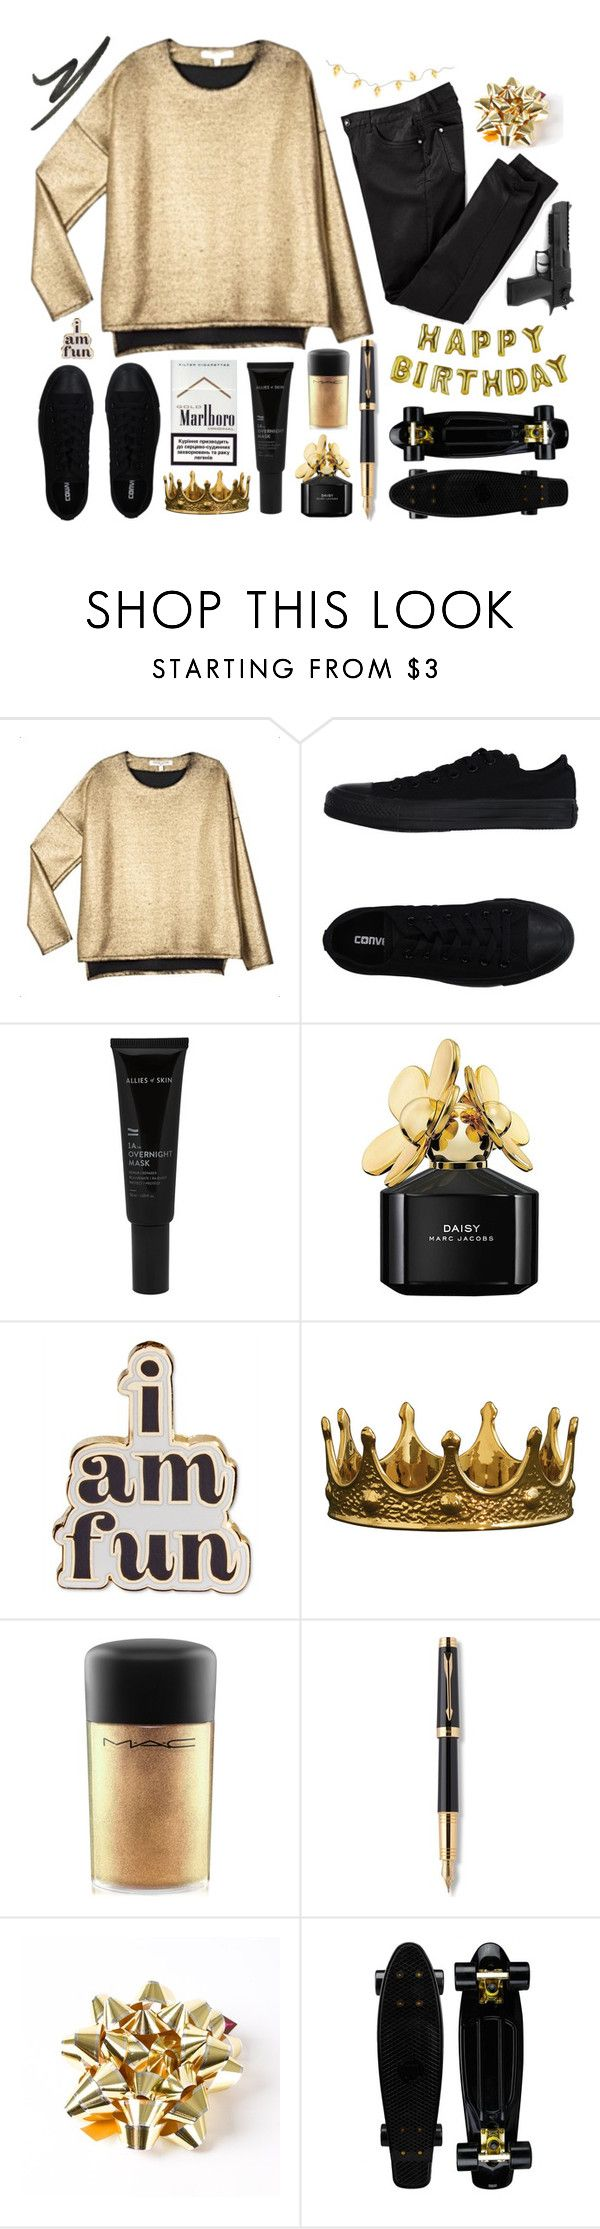 """""""IT'S MY BIRTHDAY!"""" by matryrdomandsuicide ❤ liked on Polyvore featuring VALENTINE GAUTHIER, Converse, Allies of Skin, Marc Jacobs, ban.do, Seletti, MAC Cosmetics, Parker, Talking Tables and NARS Cosmetics"""